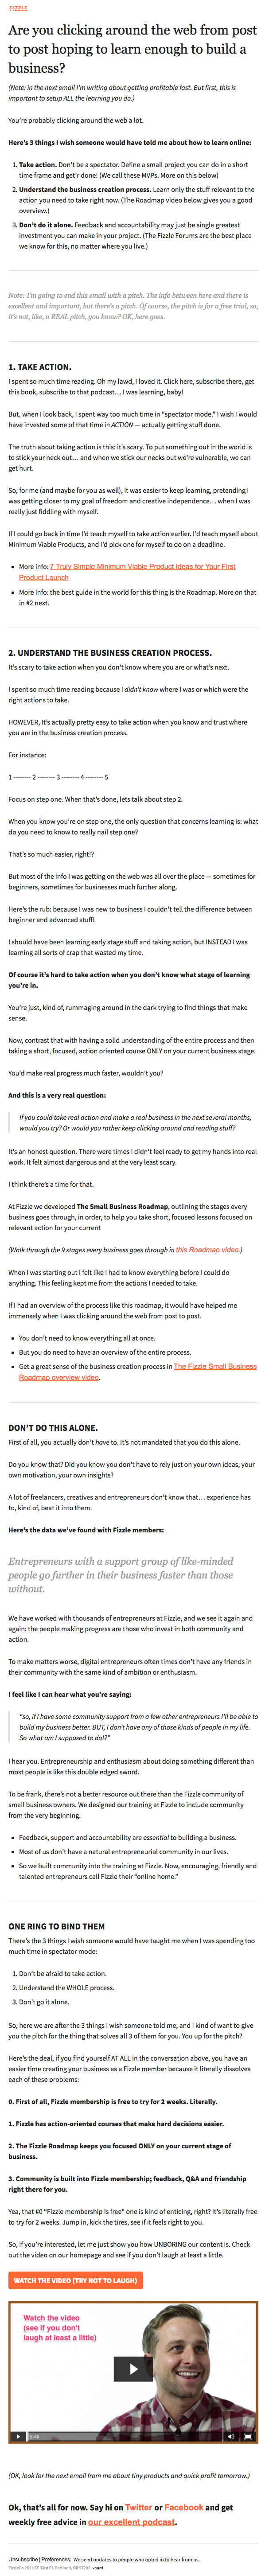 Email newsletter example design with entrepreneurship tips by Fizzle